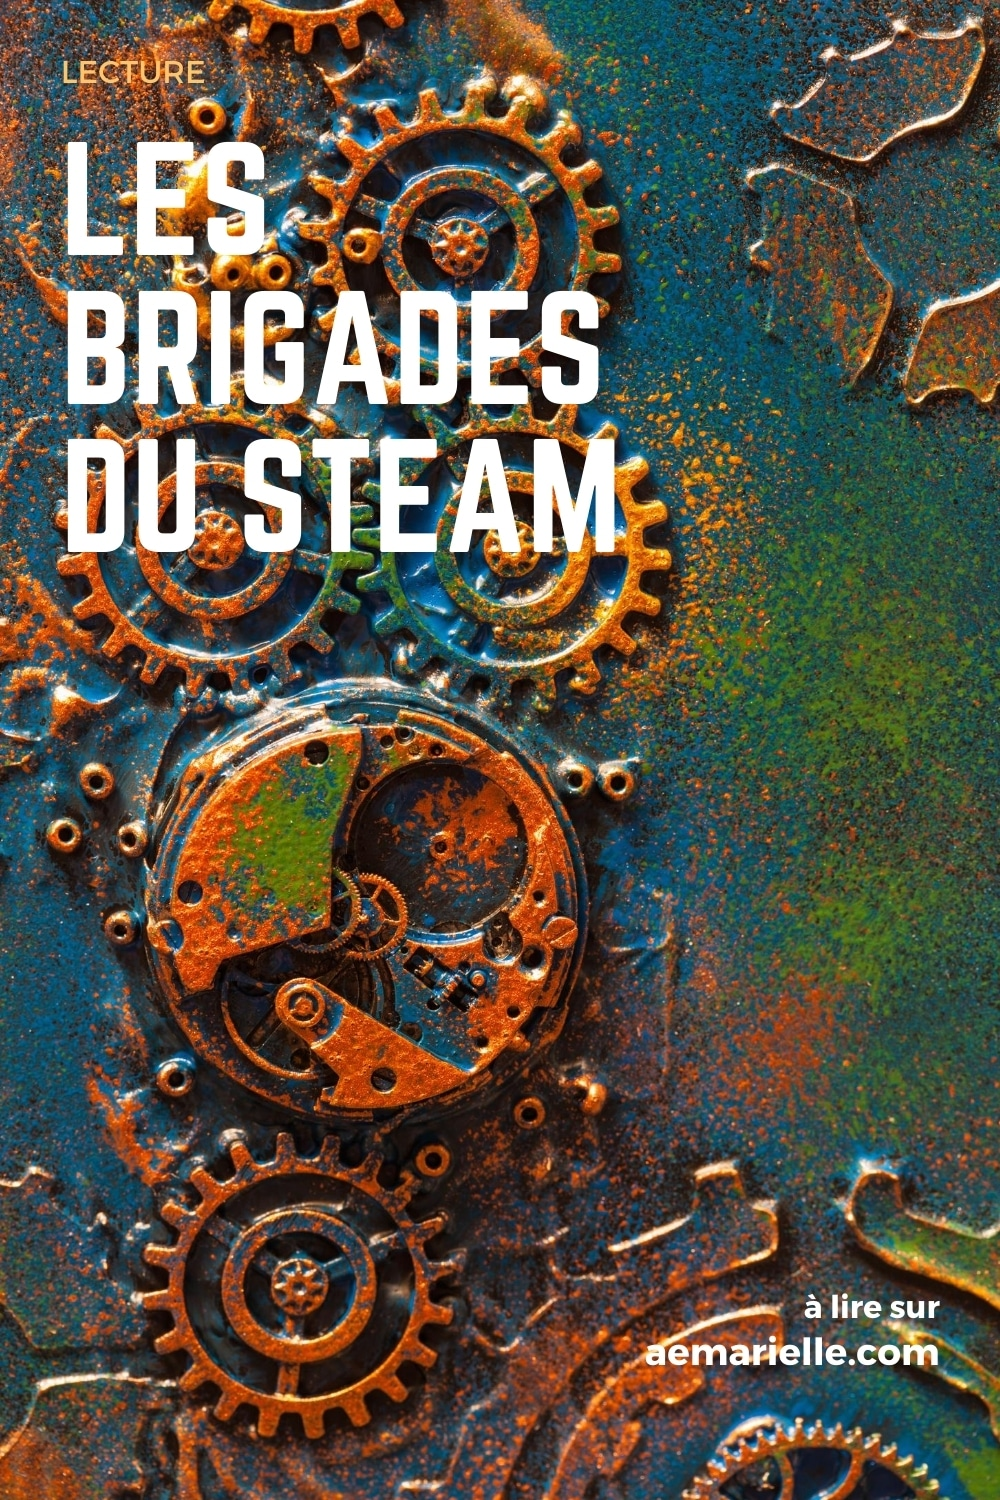 Les brigades du steam - épingle pinterest 2